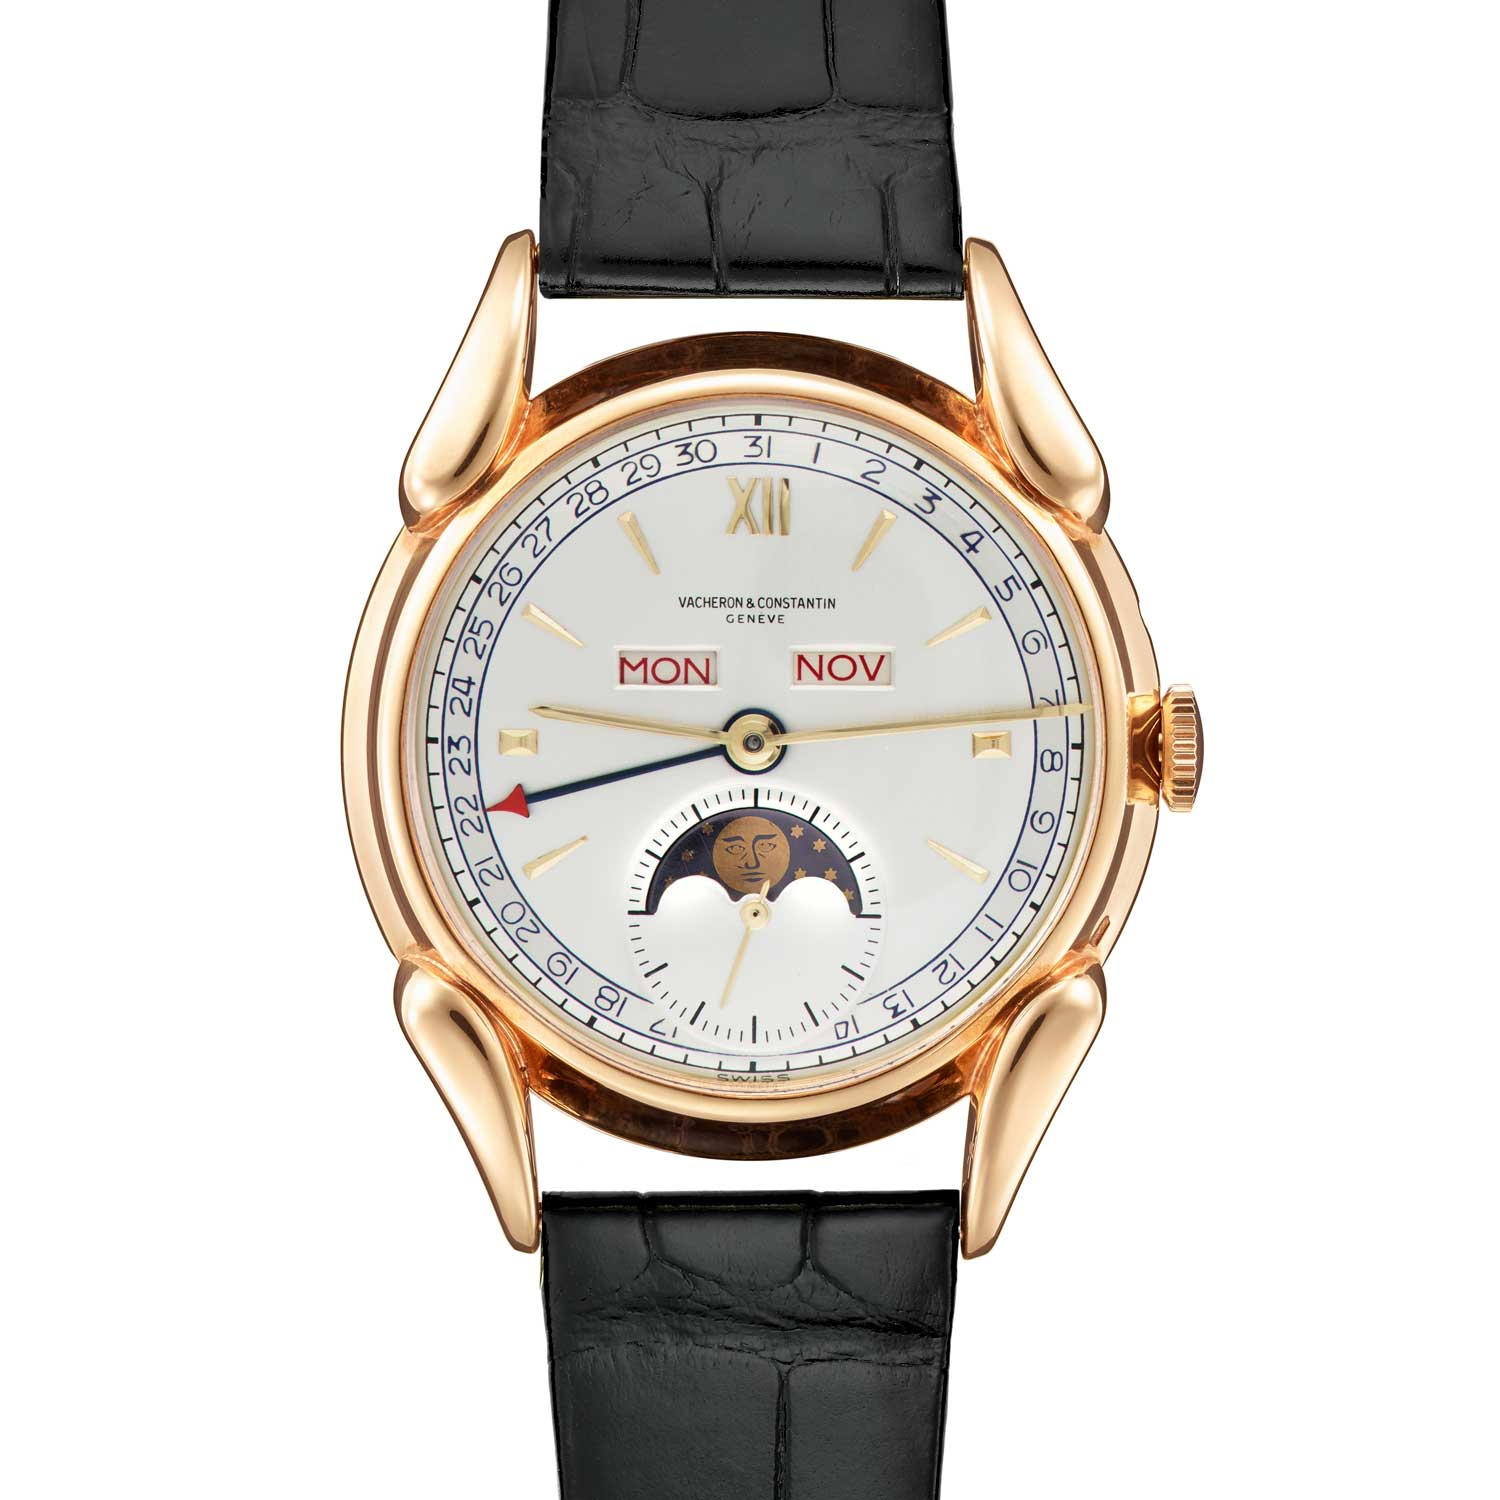 Vacheron Constantin Les Collectionneurs - 18k yellow gold complete calender with moon-phases, 1949 (No.11146)